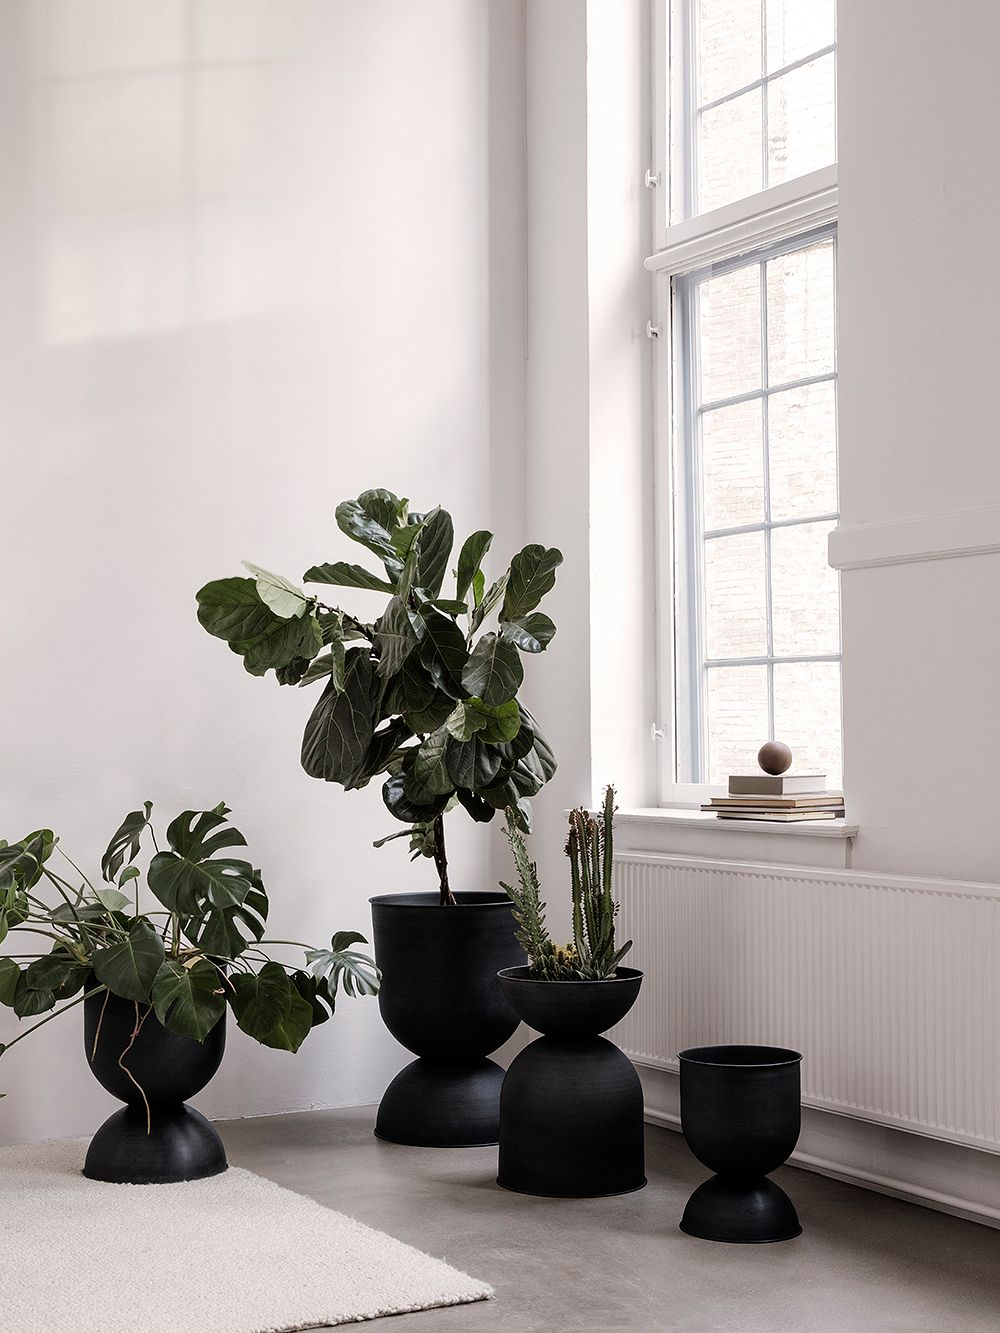 Ferm Living's Hourglass pot